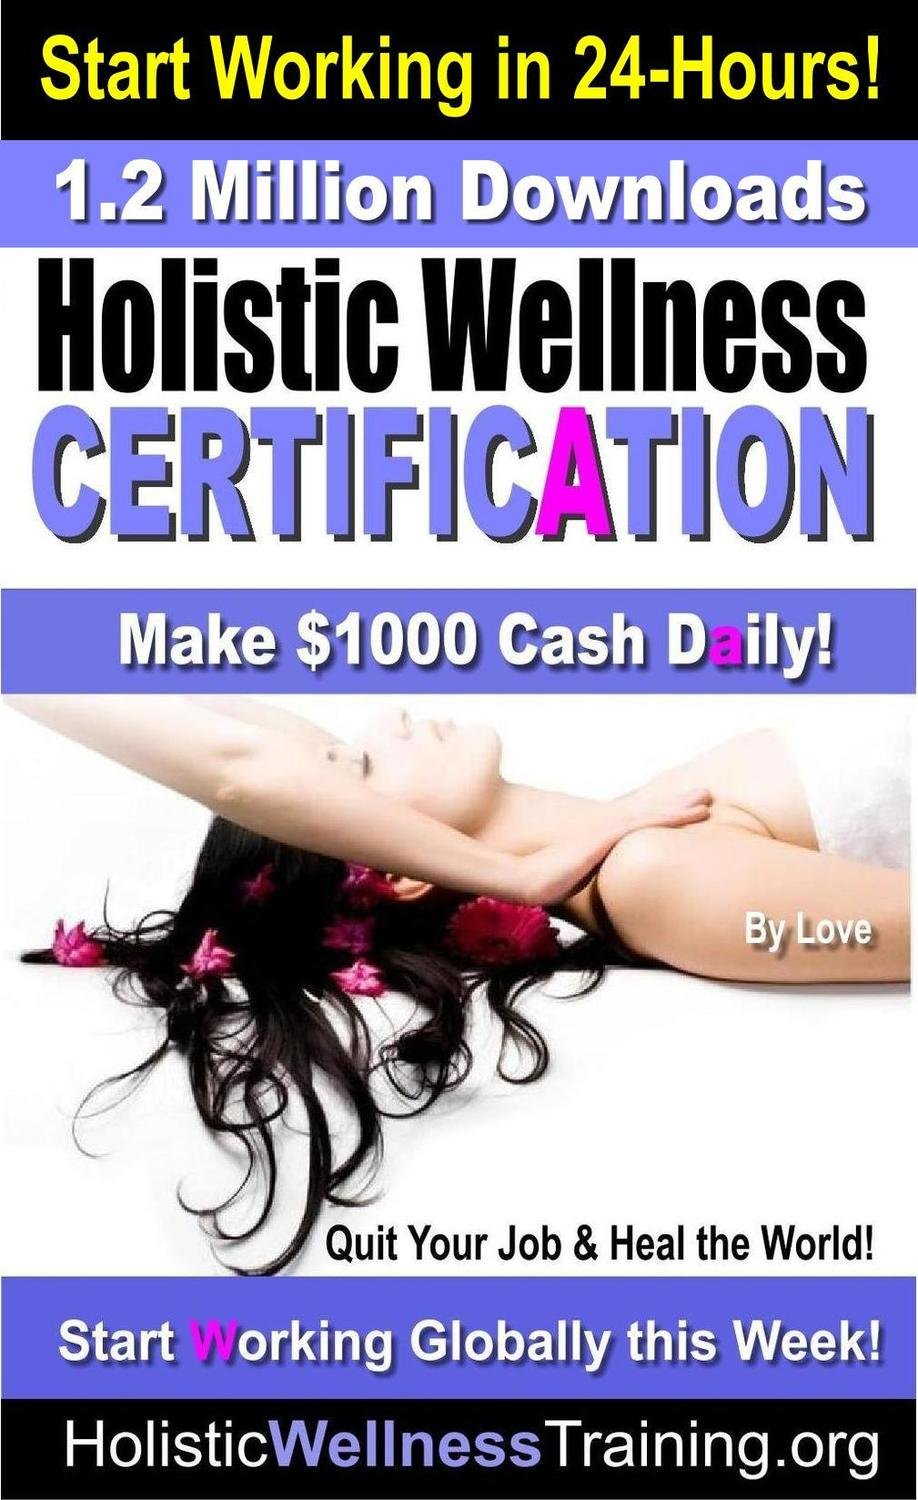 Holistic Wellness Certification (Make $1000 Cash Daily) while healing the world | 1.2 Million Downloads